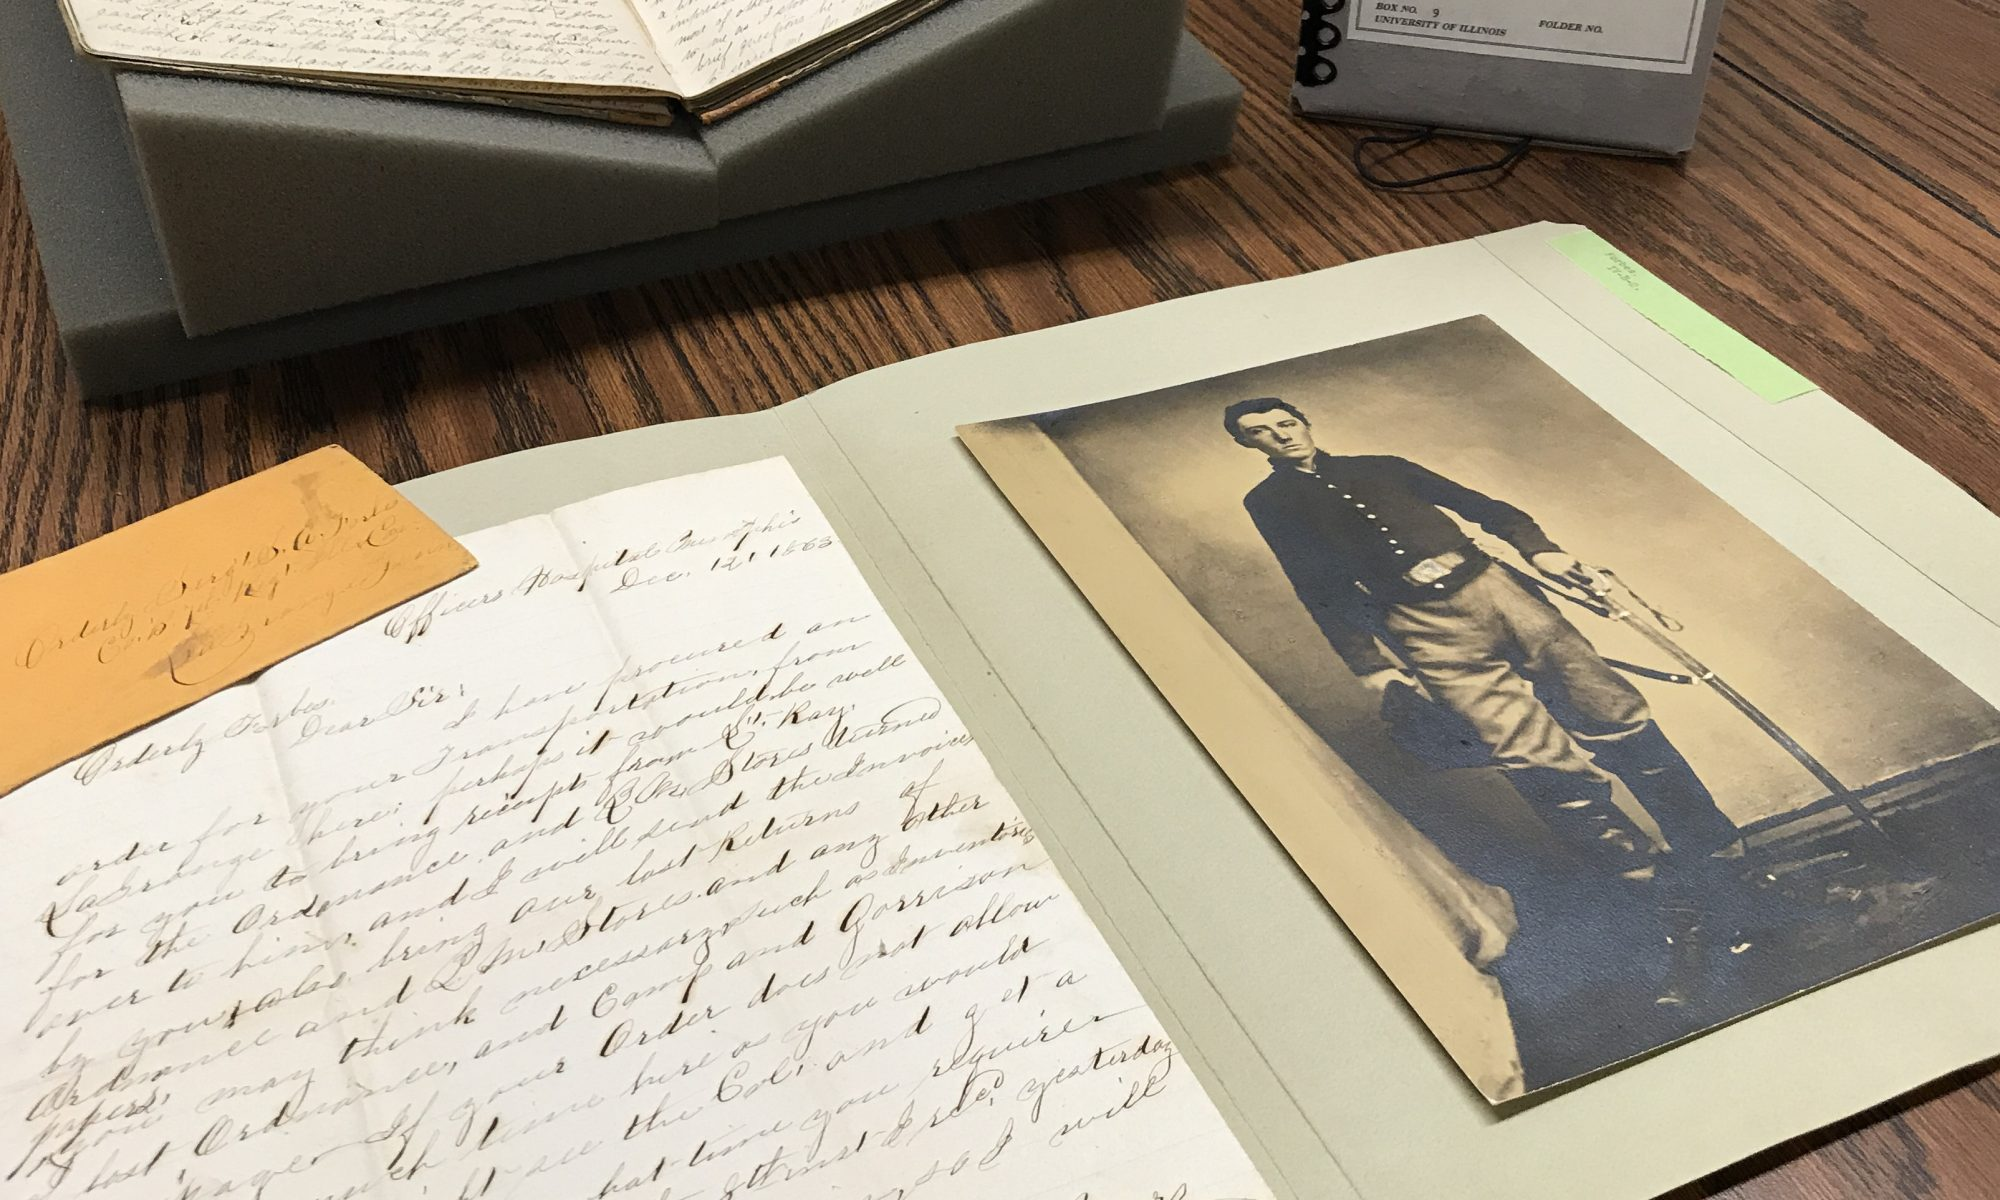 Picture of an open archival folder containing a Civil War letter and envelope as well as a photograph of a Civil War soldier. Image also includes an open diary on book supports and an archival box. All items are found in the Stephen A. Forbes Collection at the IHLC.